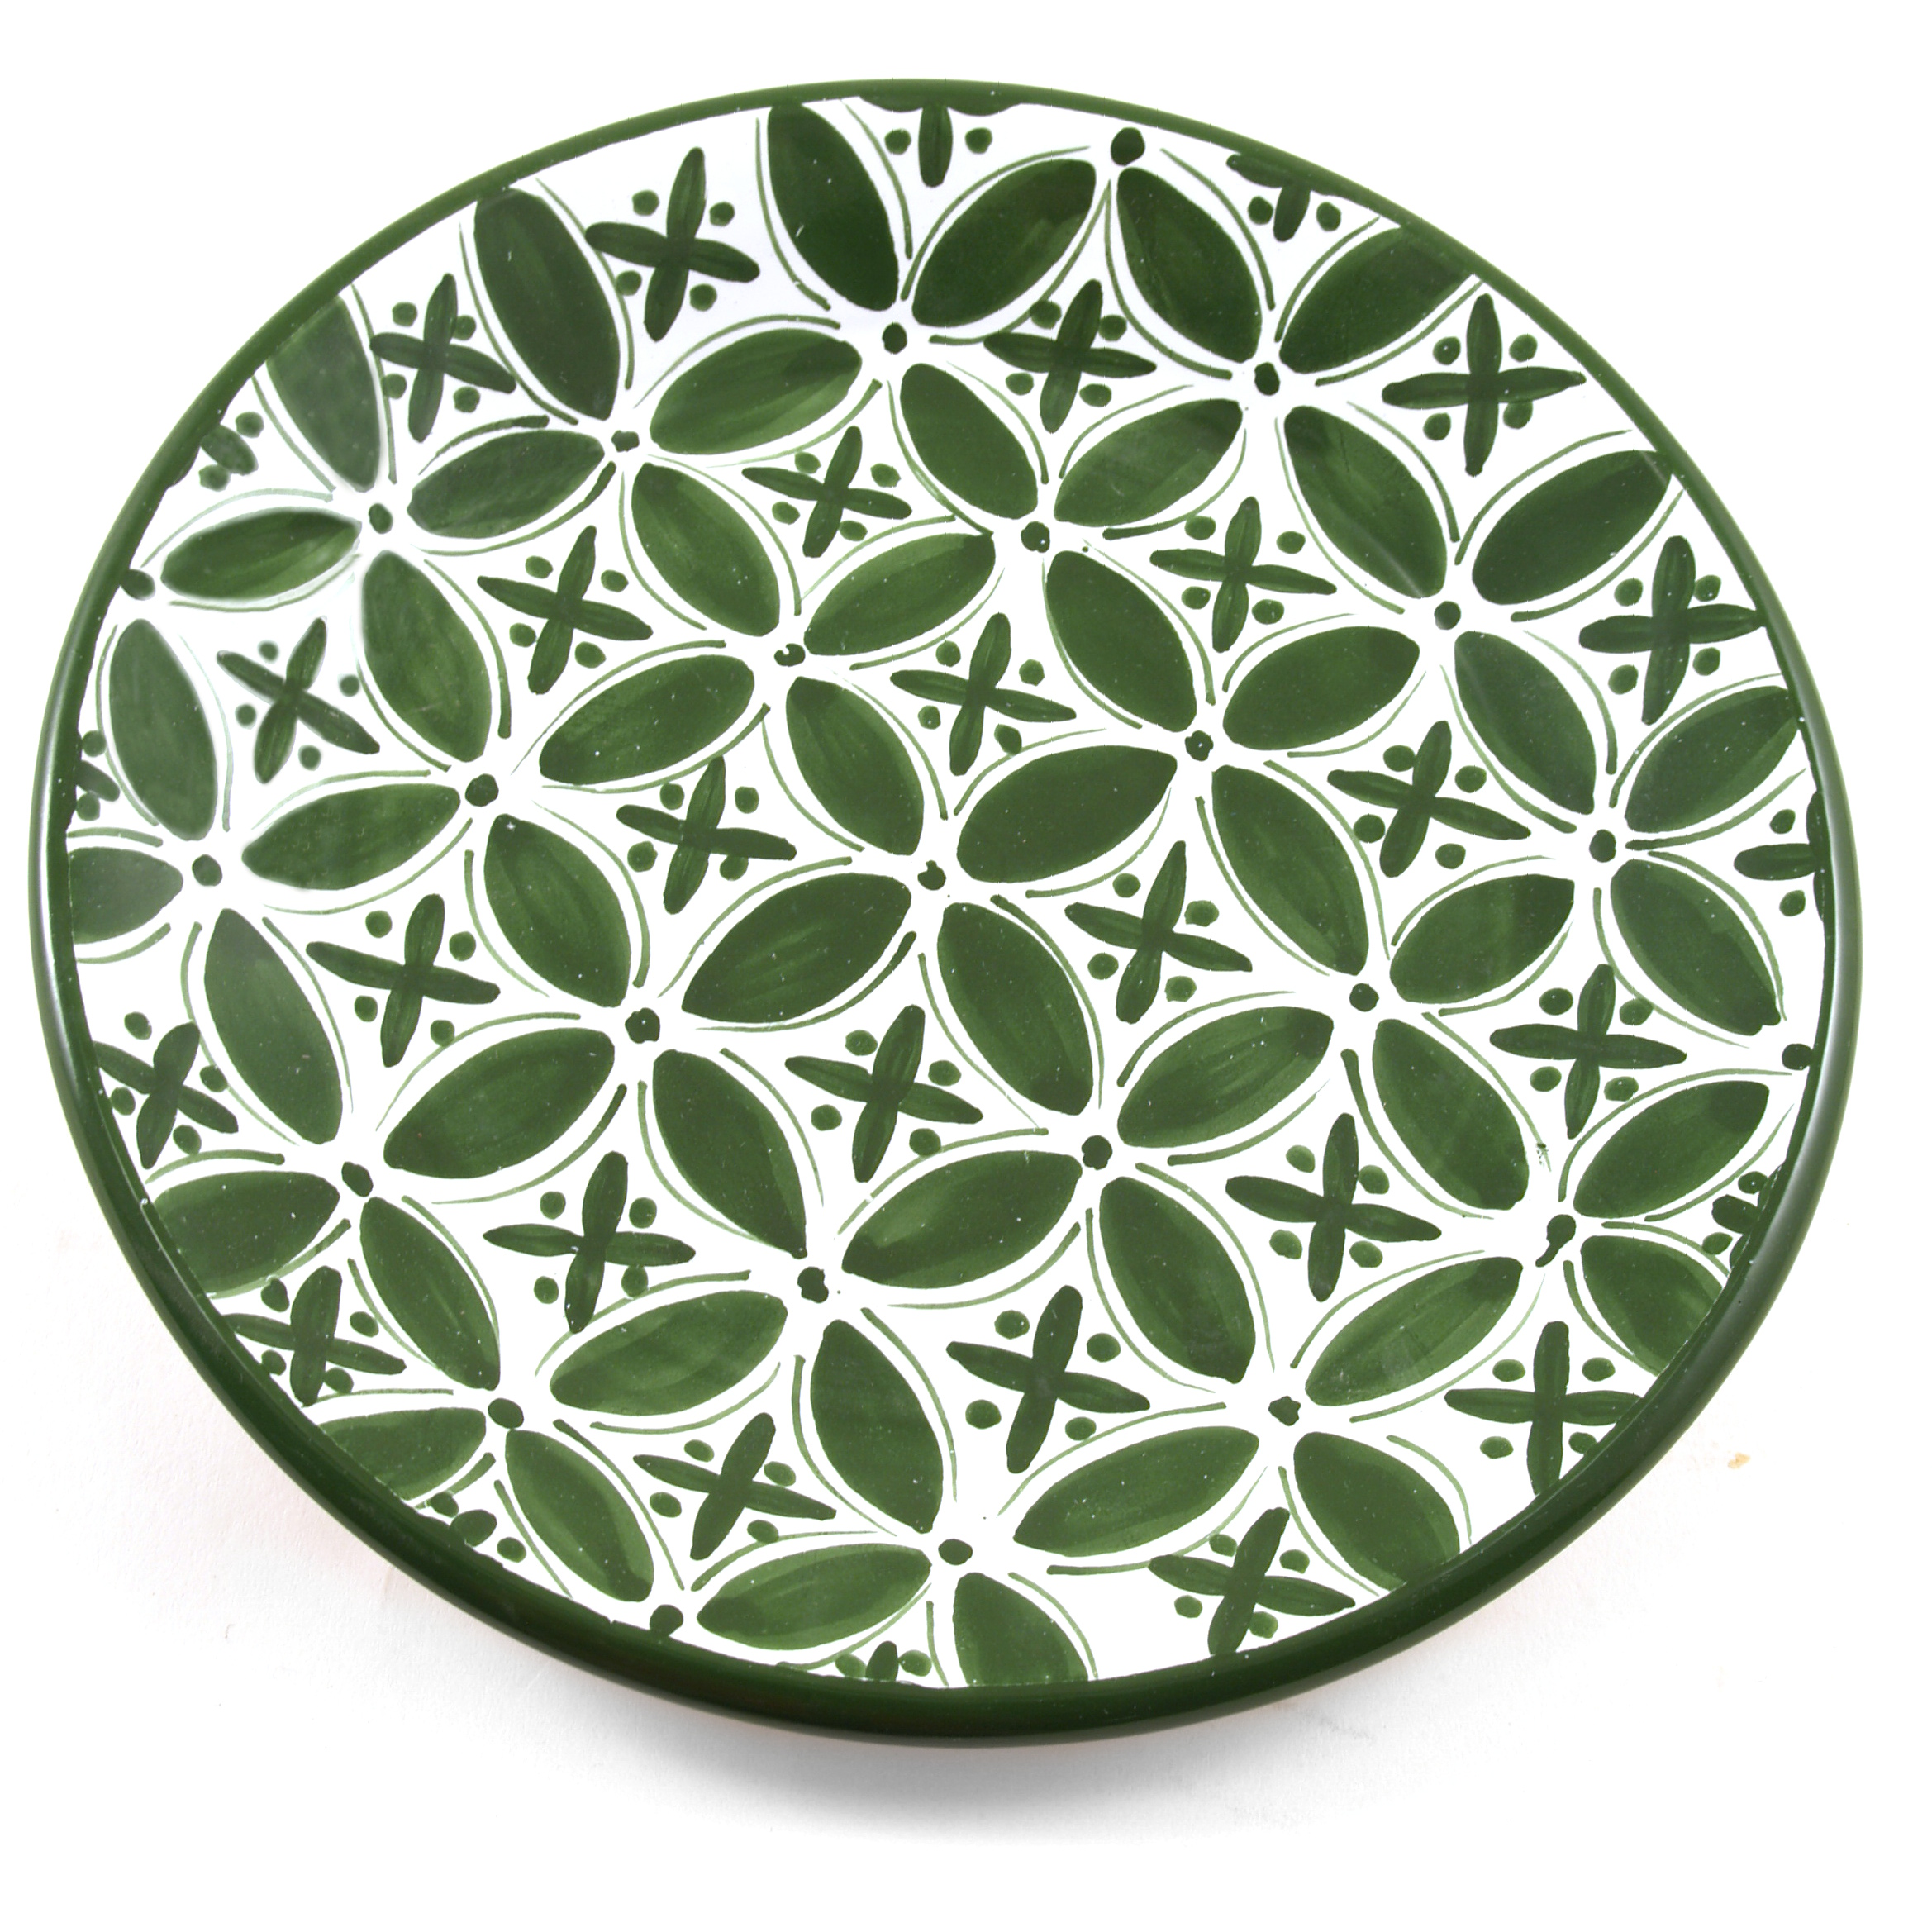 Sobremesa Fairtrade Fez Collection Handmade White and Green Ceramic Dinner Plate, Set of 4